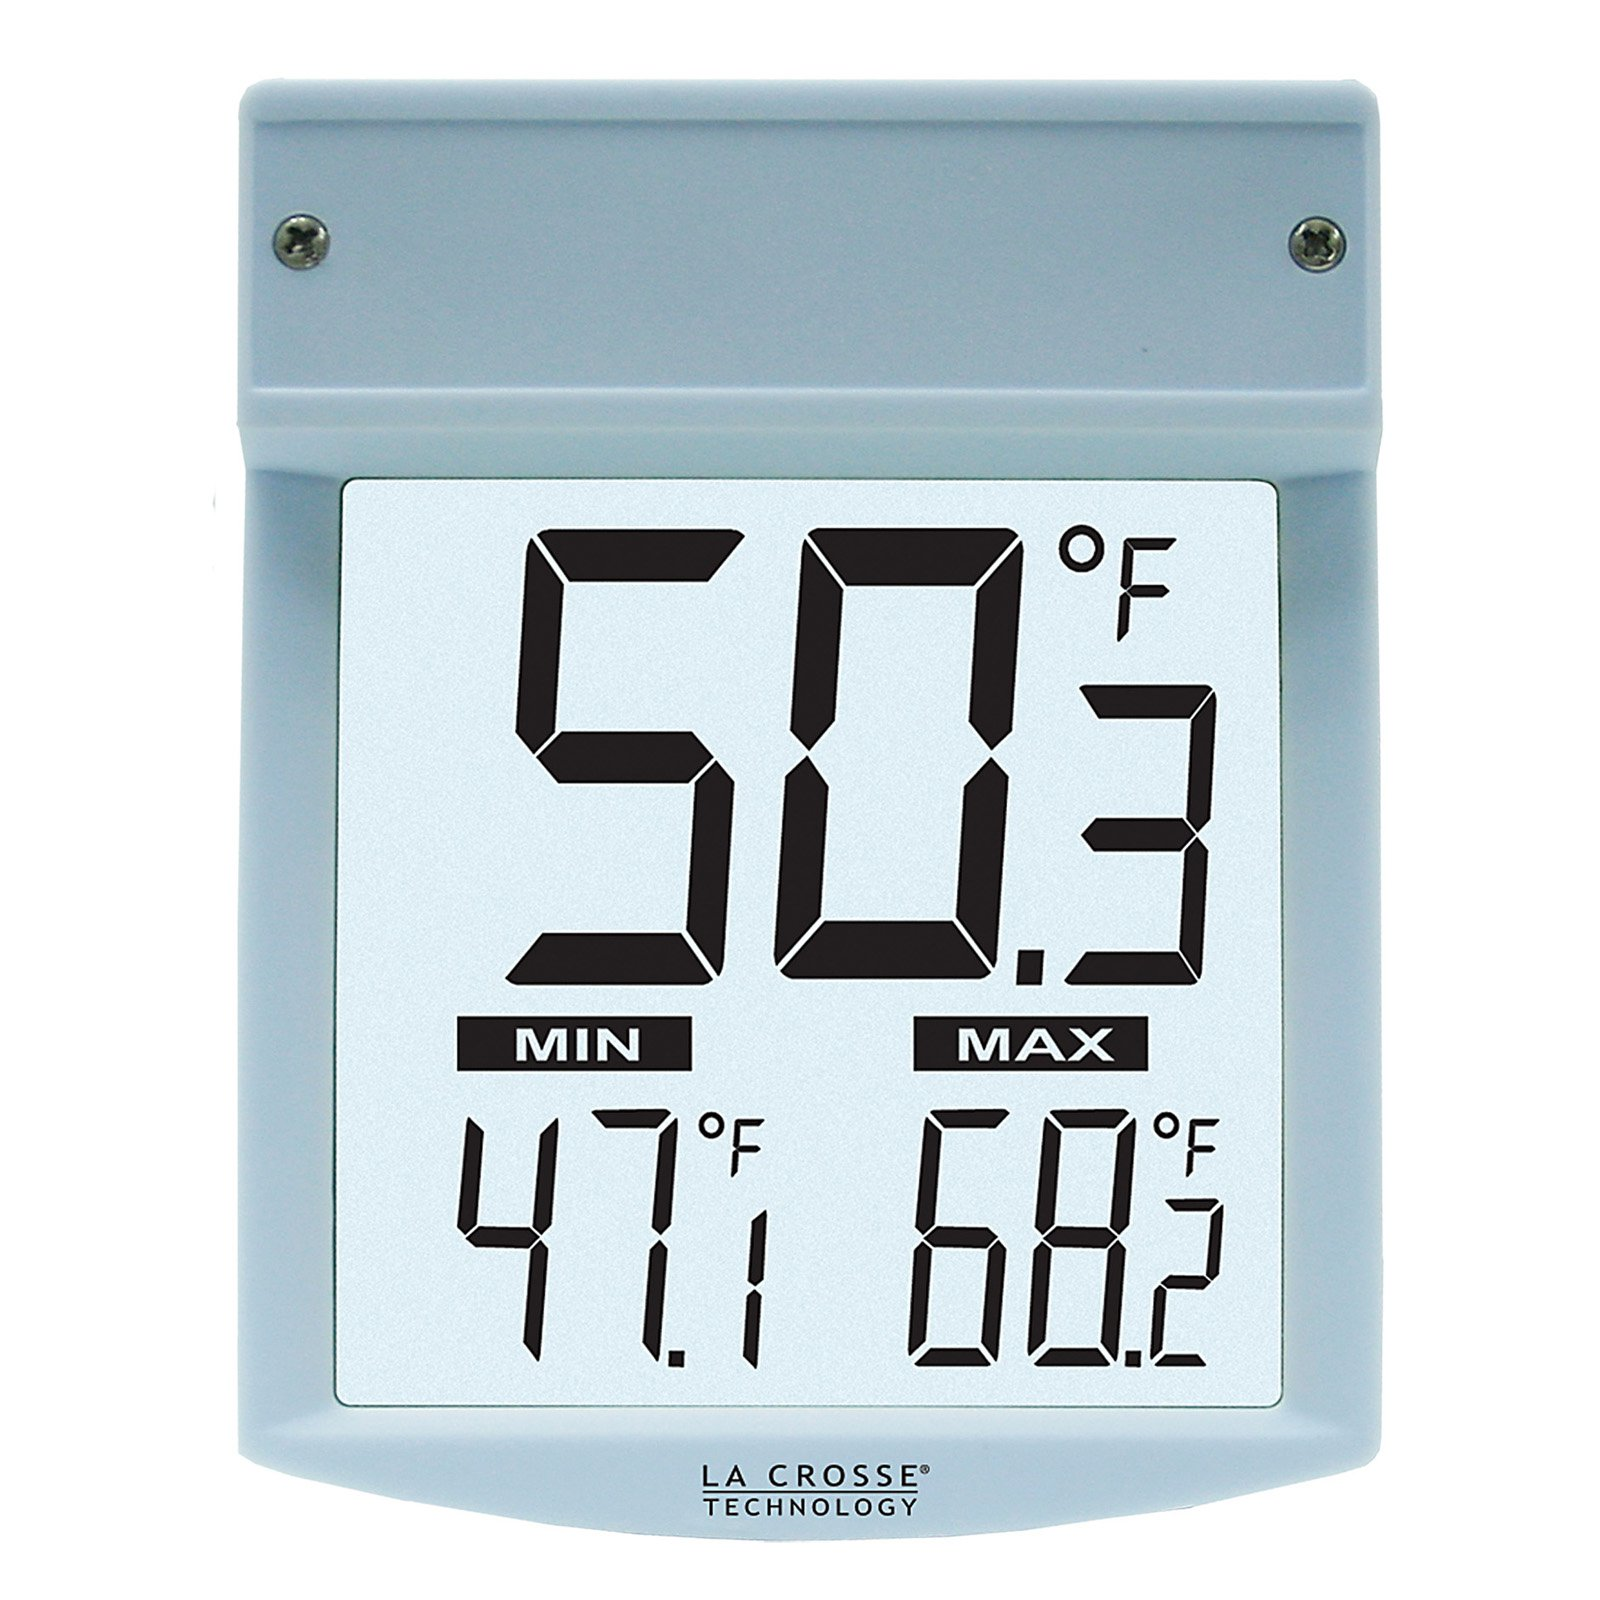 LaCrosse Technology Window Thermometer - White